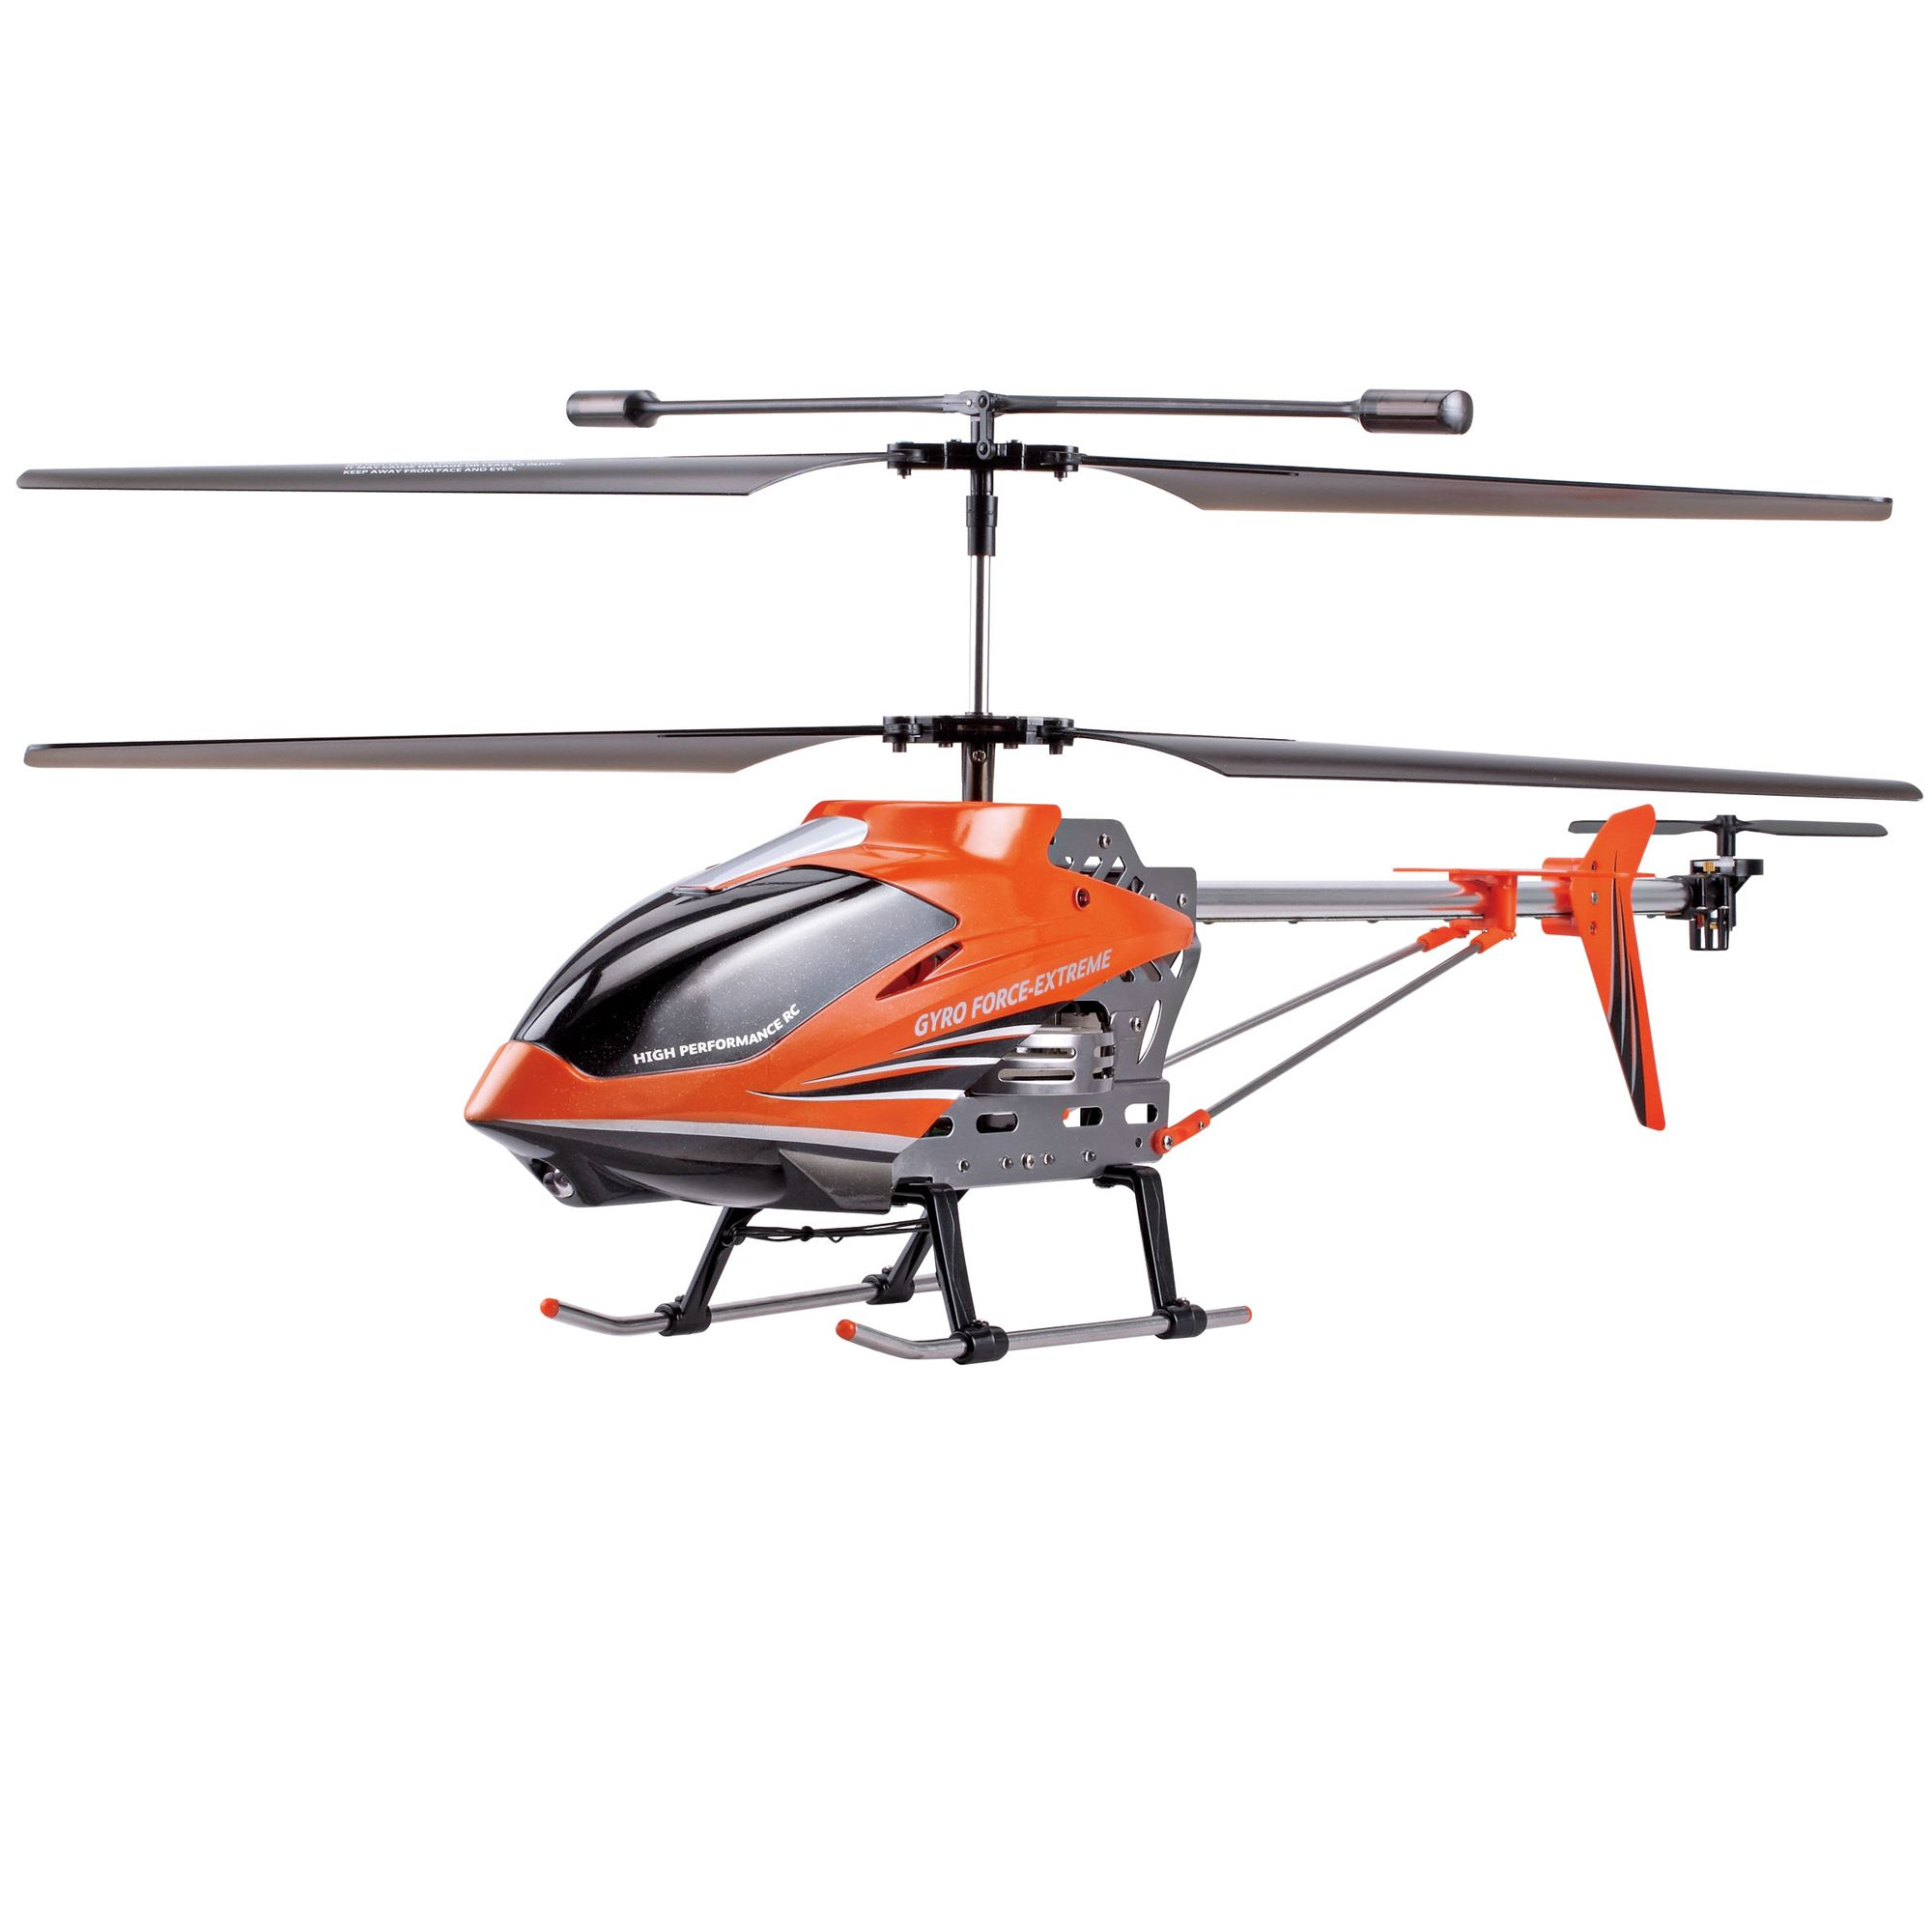 Hamleys RC Gyro Force Extreme Helicopter